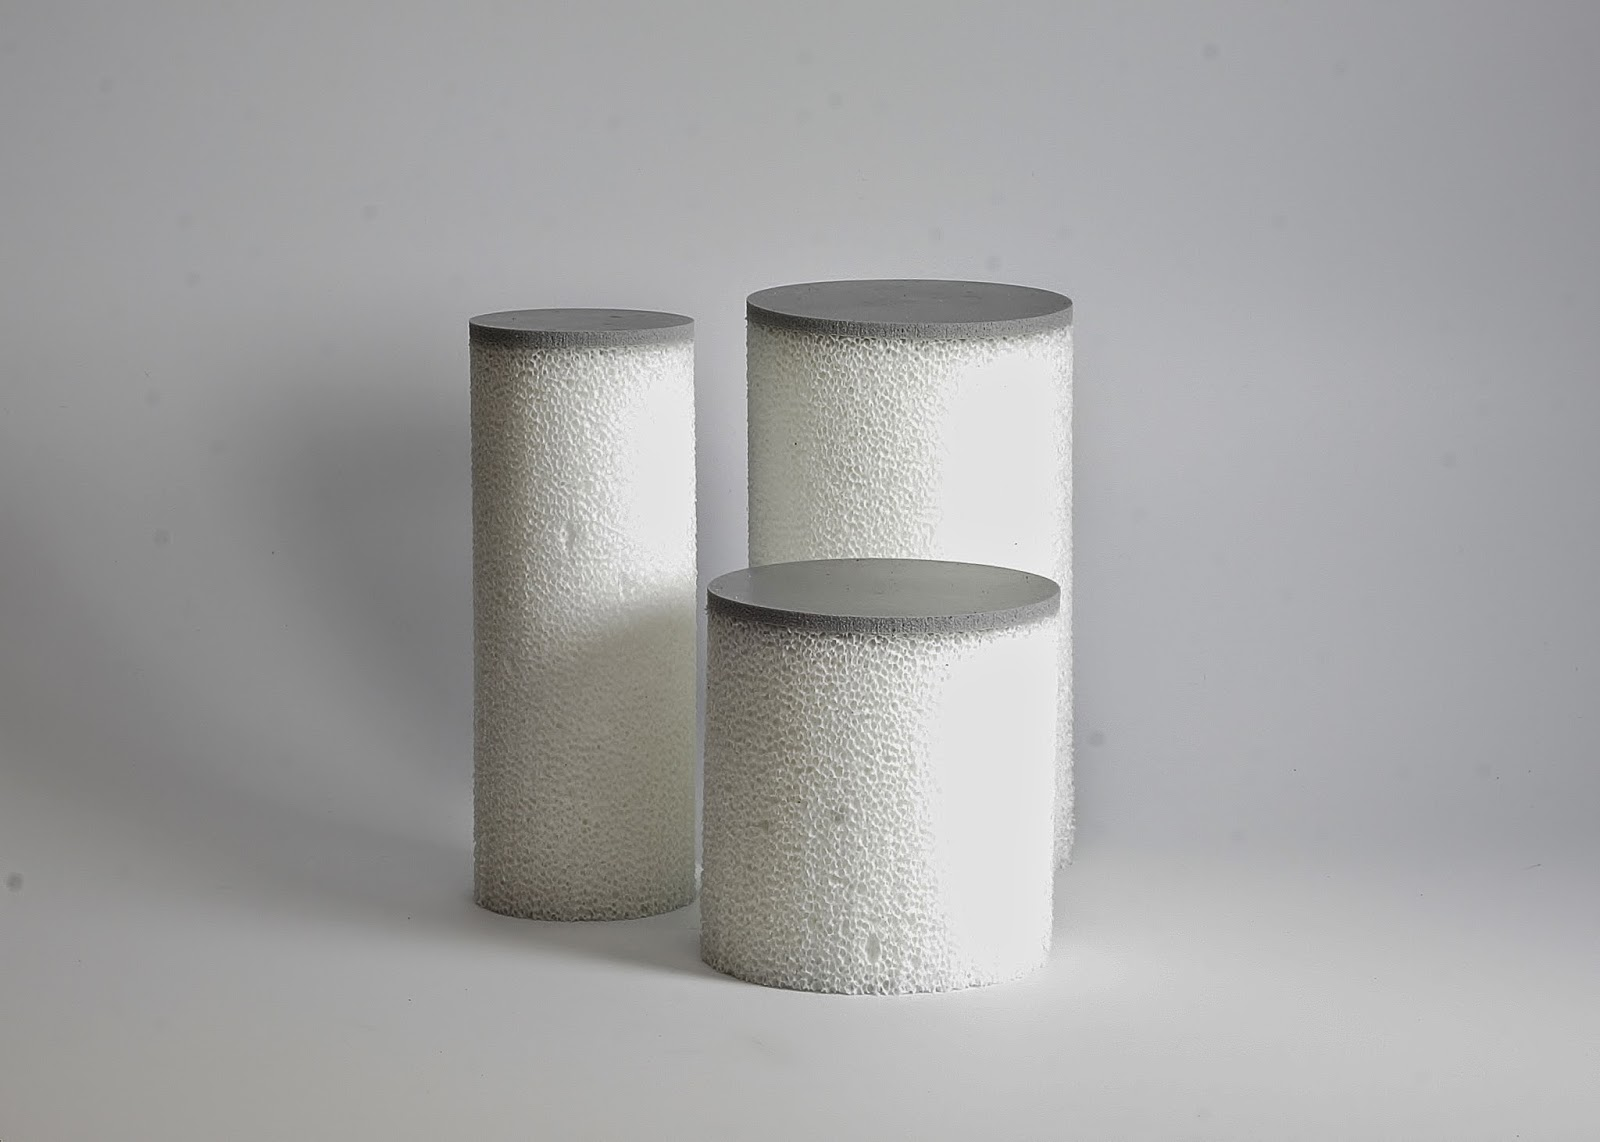 silicone foam plugs for environmental chambers